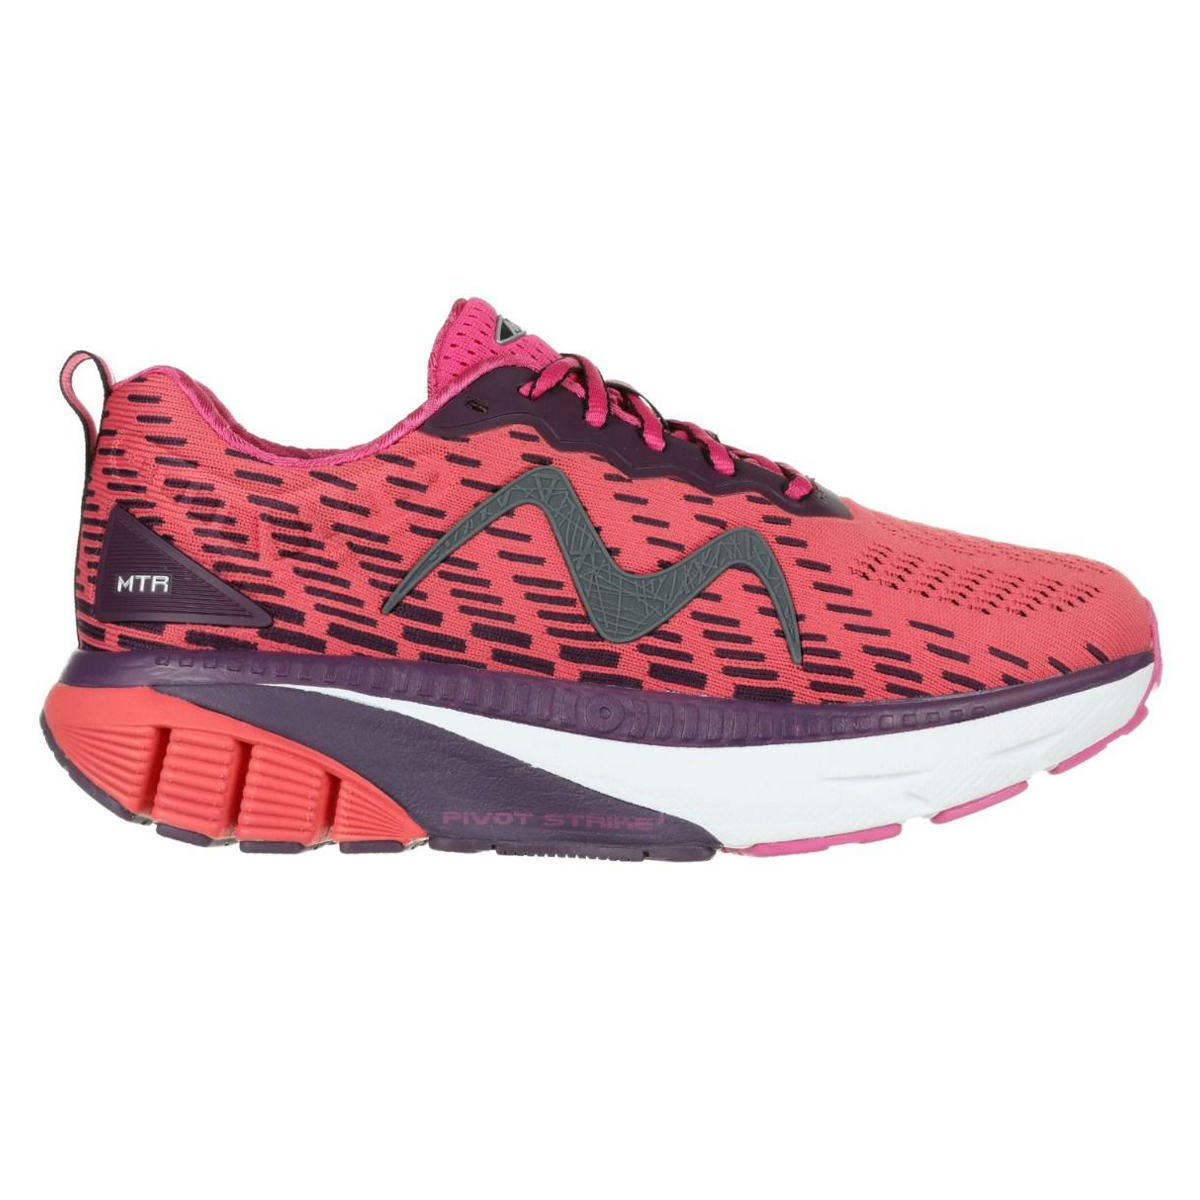 MTR-1500-Women's-Lace-Up-Running-Shoe-in-Red